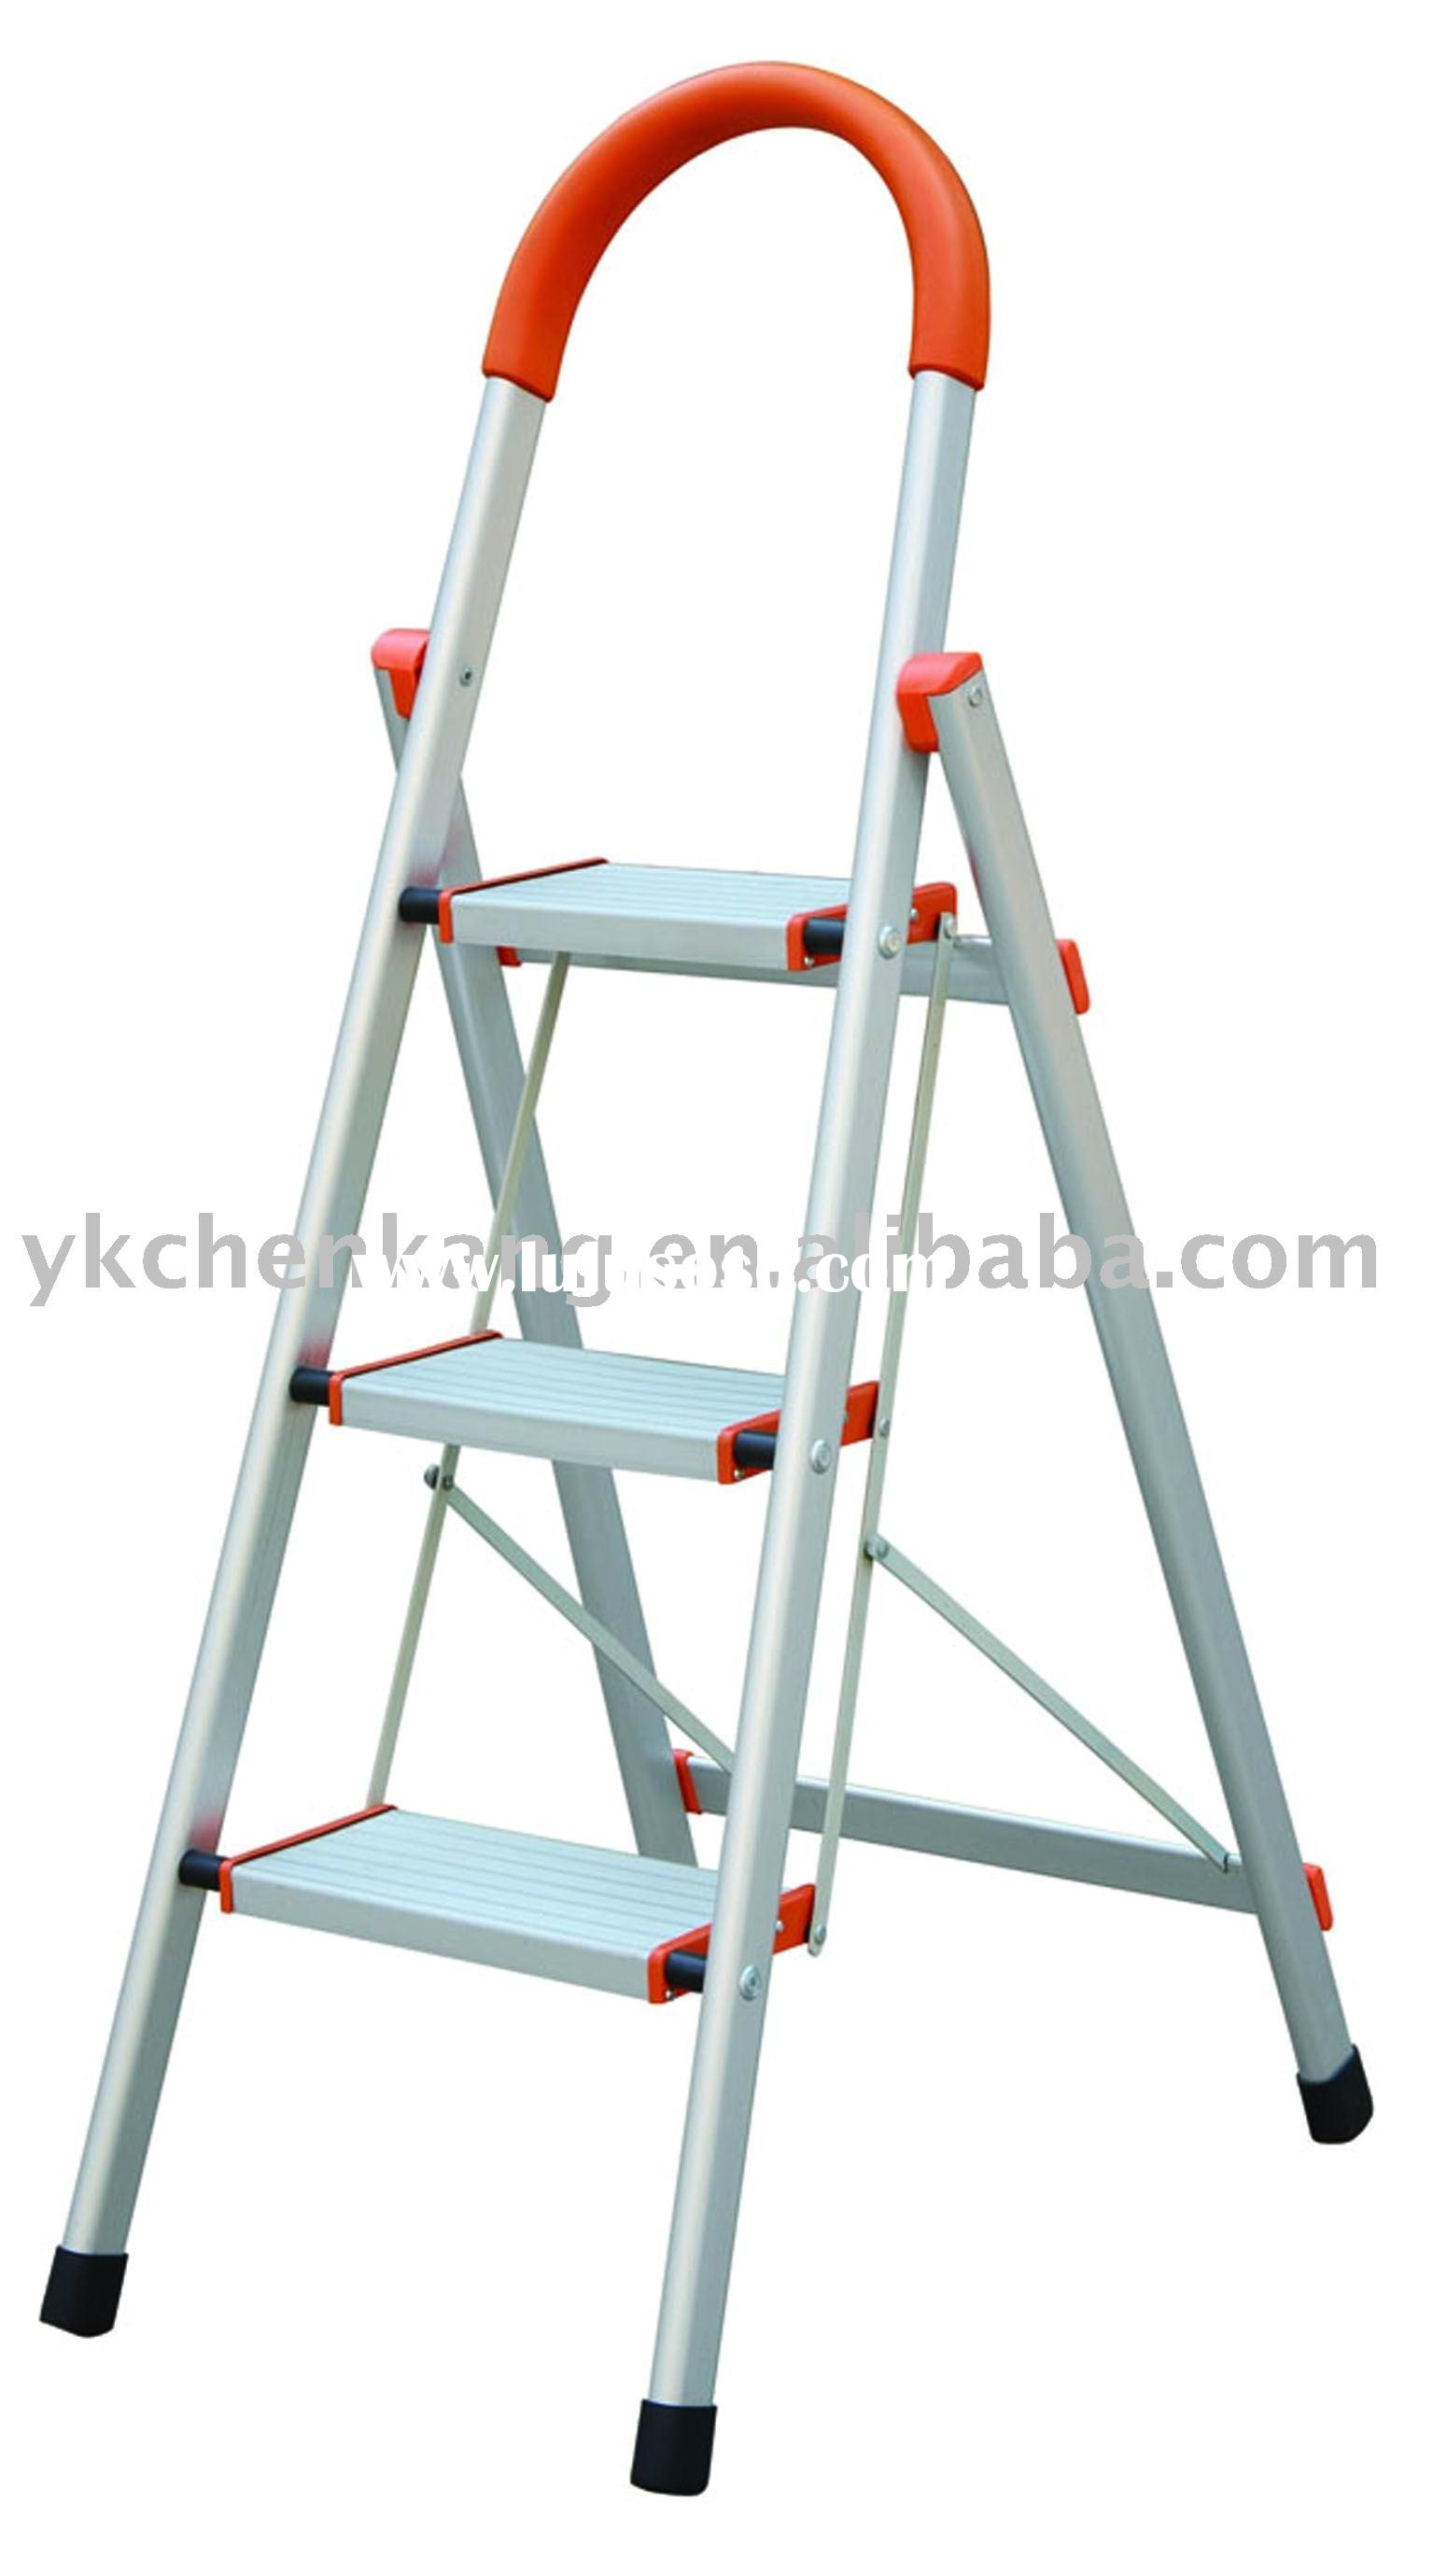 Household Aluminum Ladders Step Ladder For Sale Price